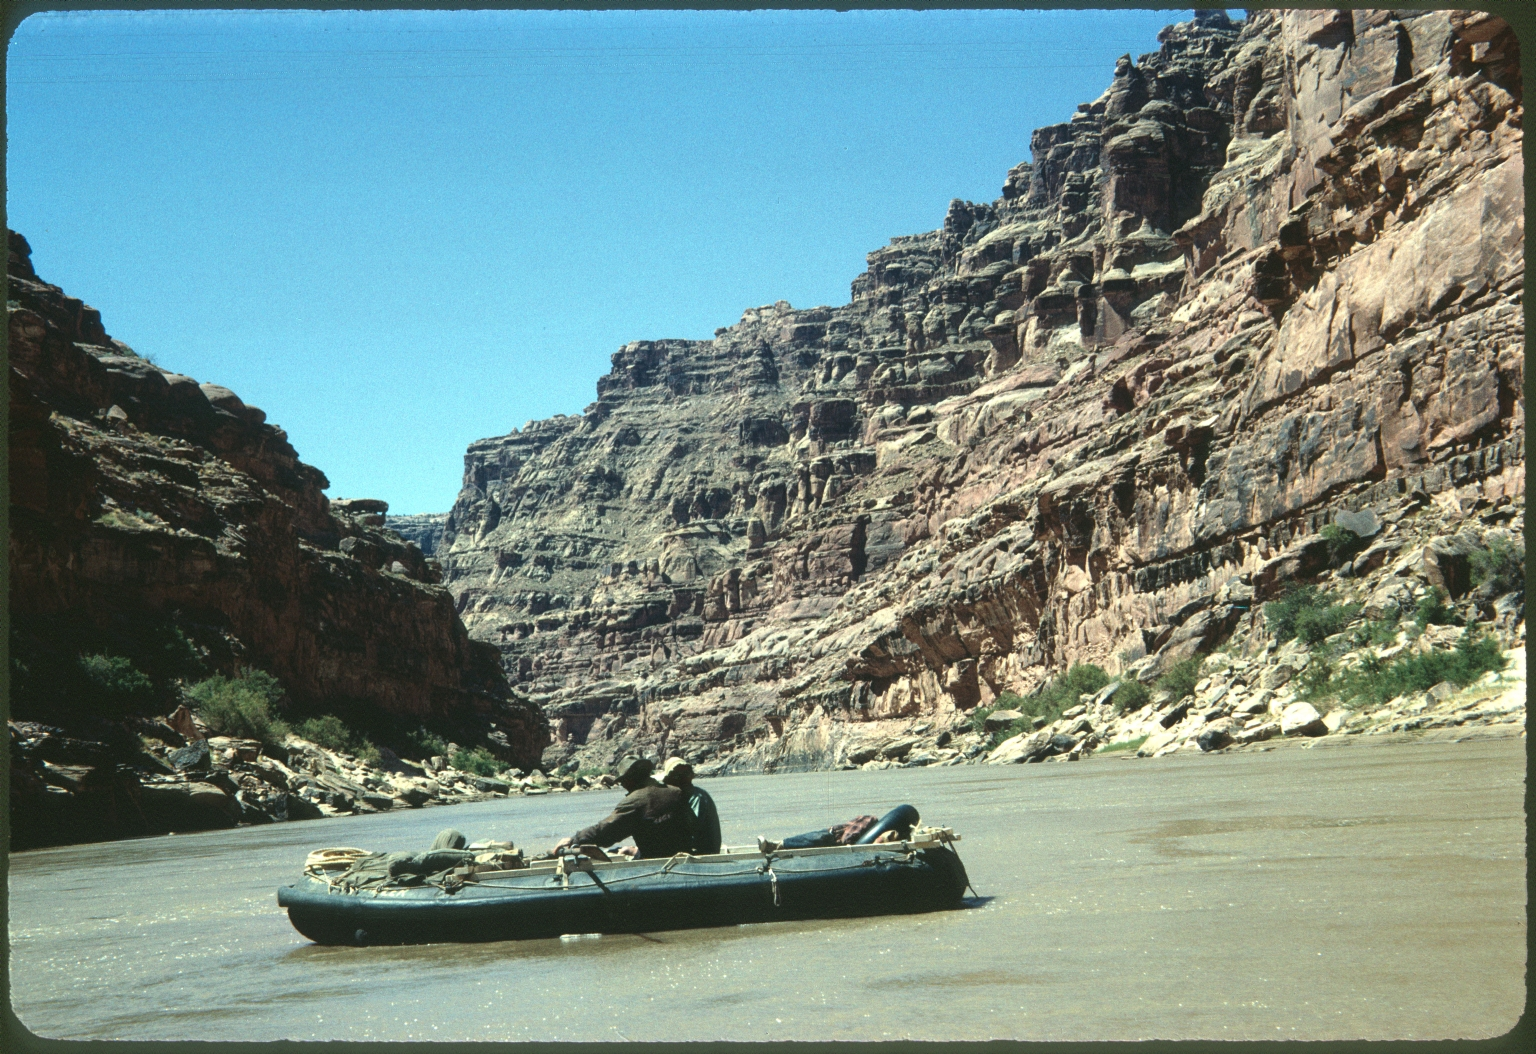 Rafting in Glen Canyon